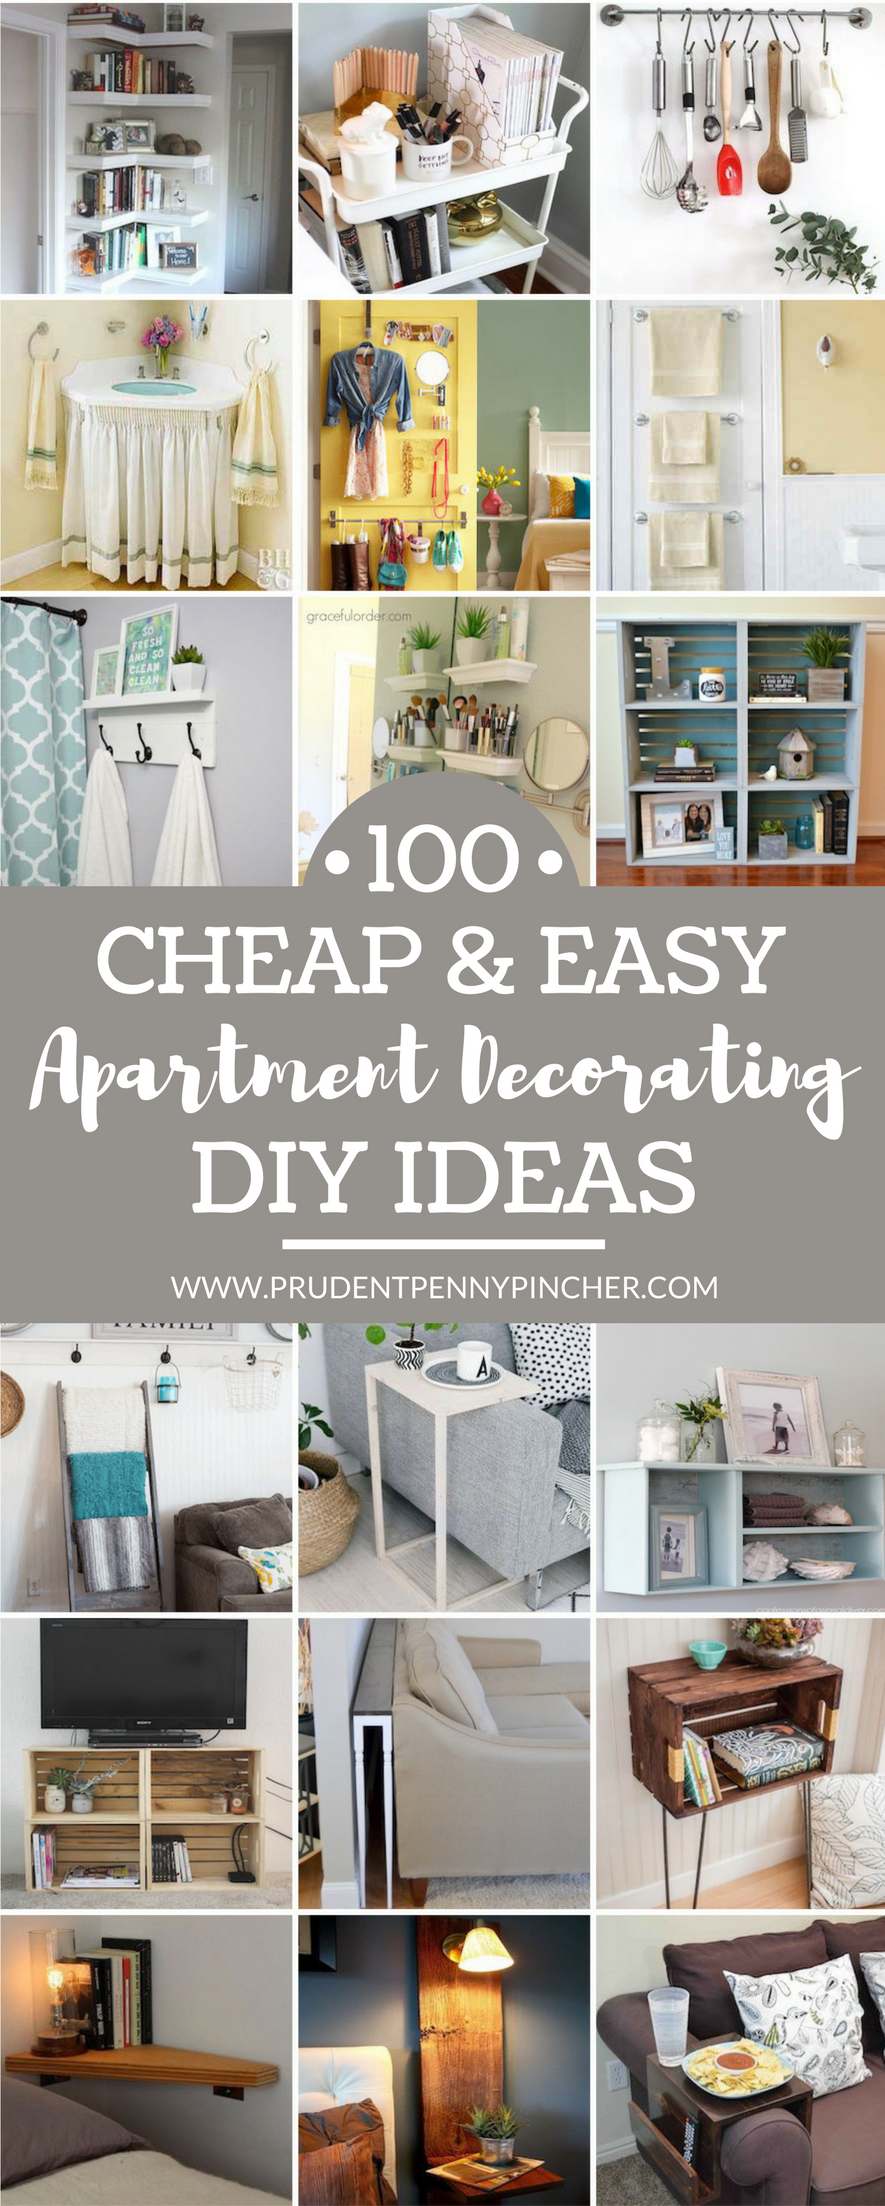 45 Awesome Diy Home Decor Apartment Ideas On A Budget